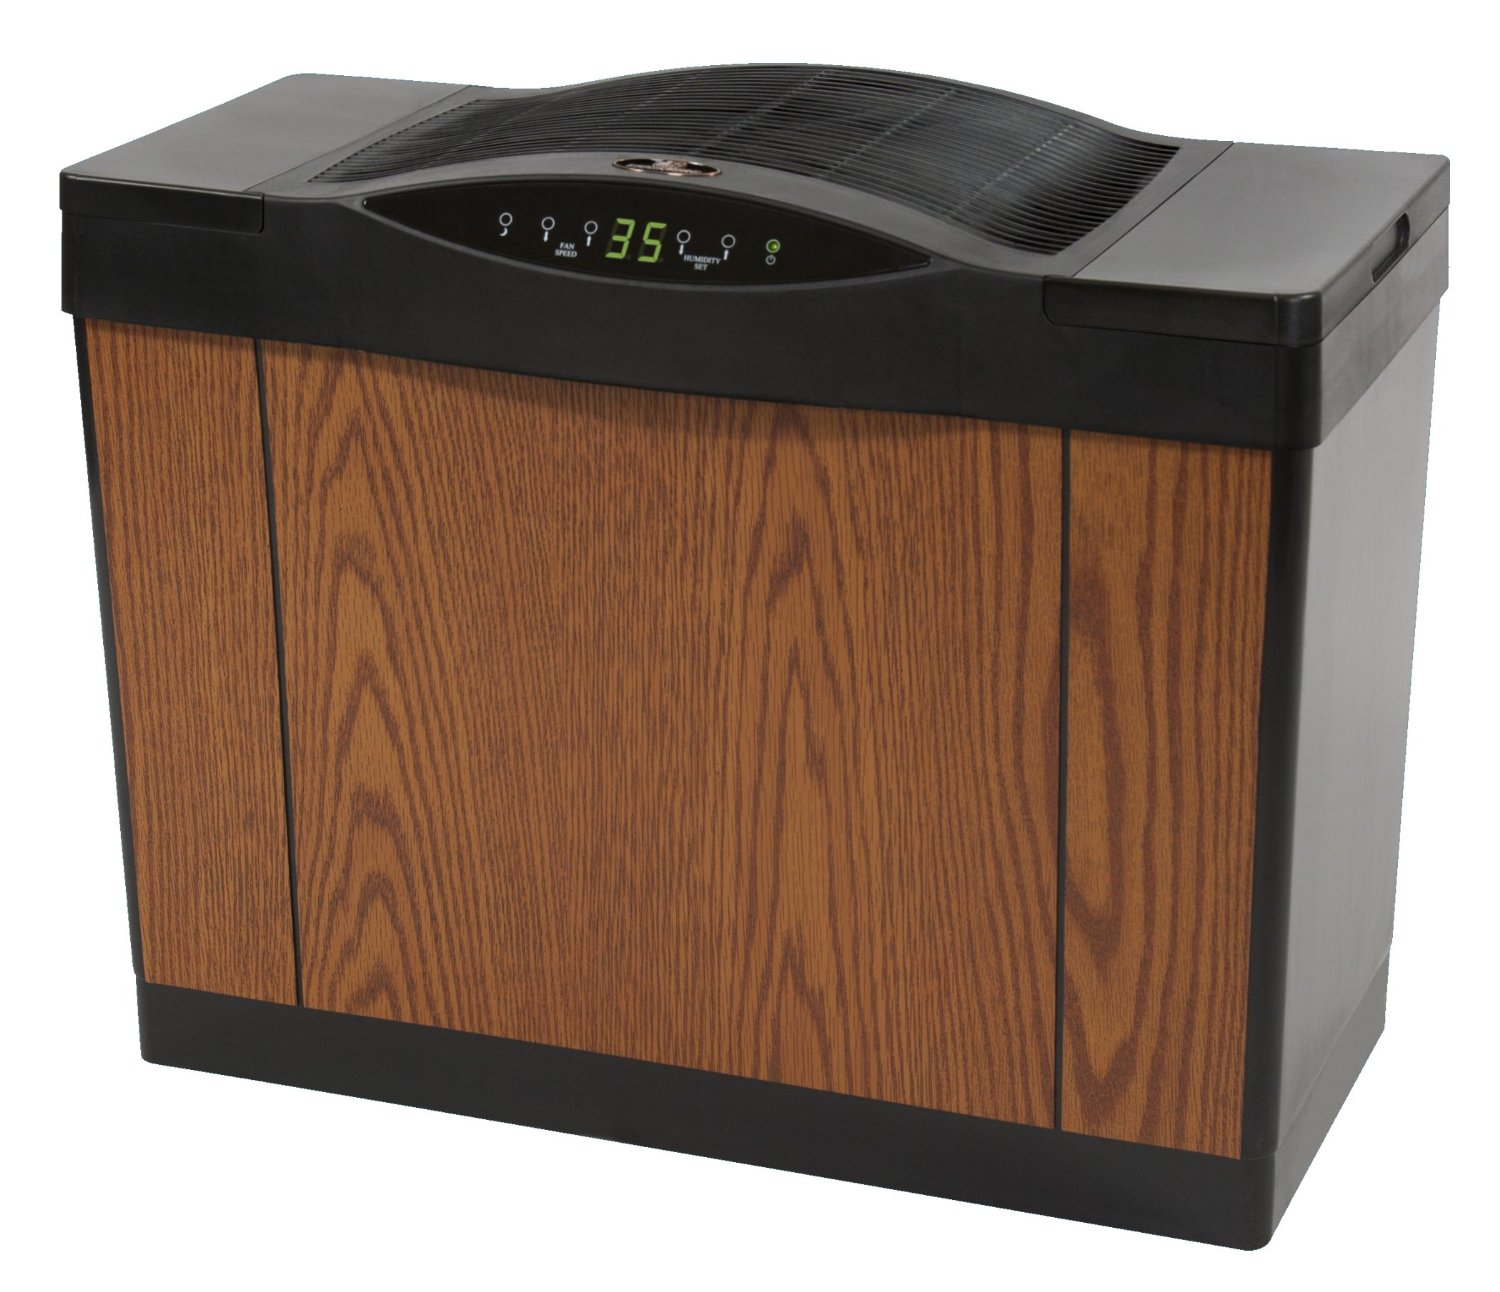 Top 6 Best Console Humidifier and Reviews 2015 2016 #8D5937